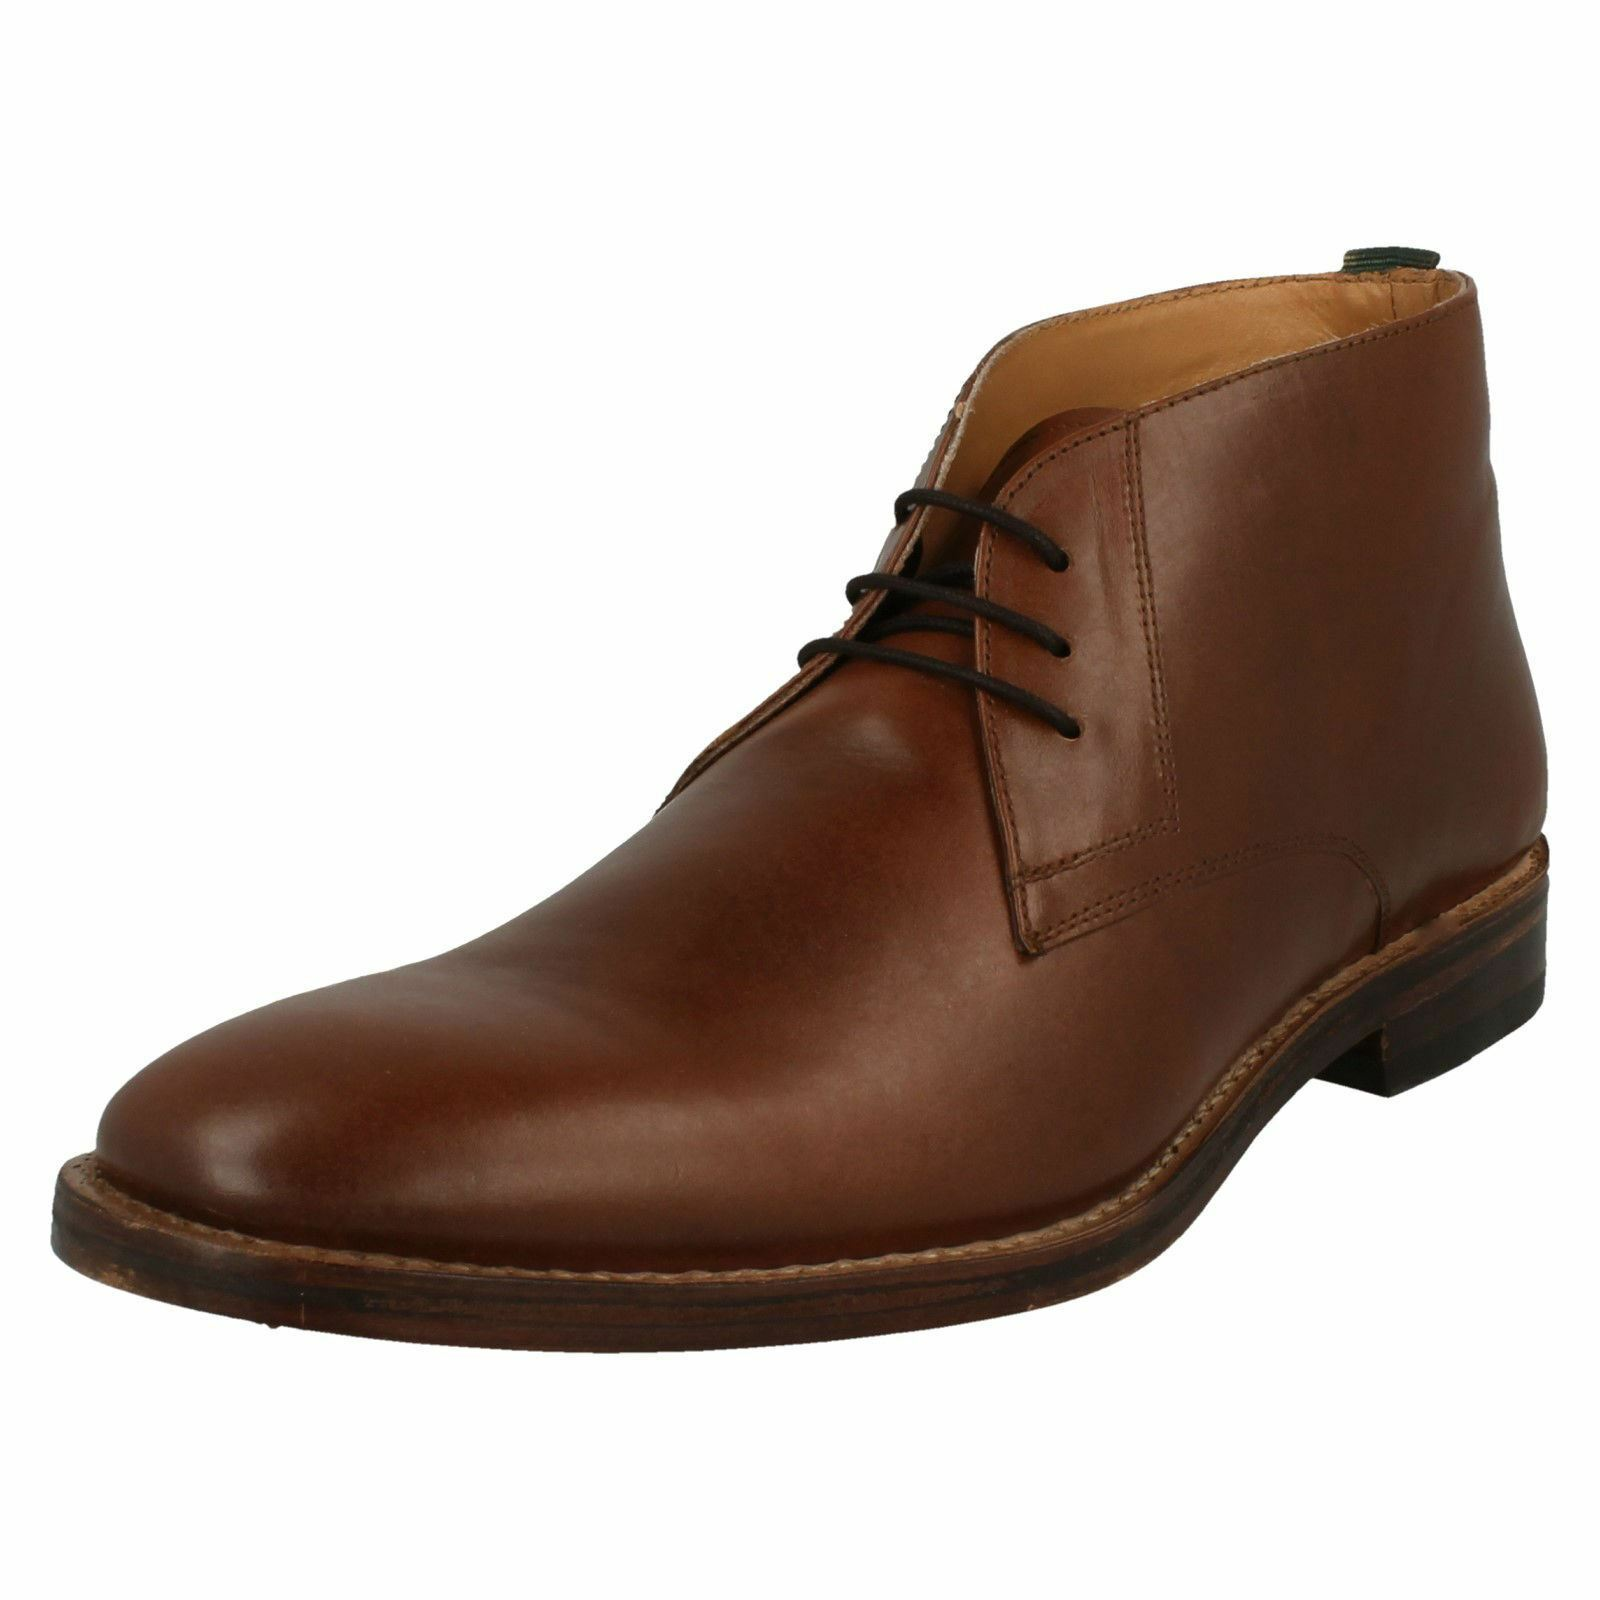 Catesby Mens Lace Up Smart Desert Boots MRG50504C